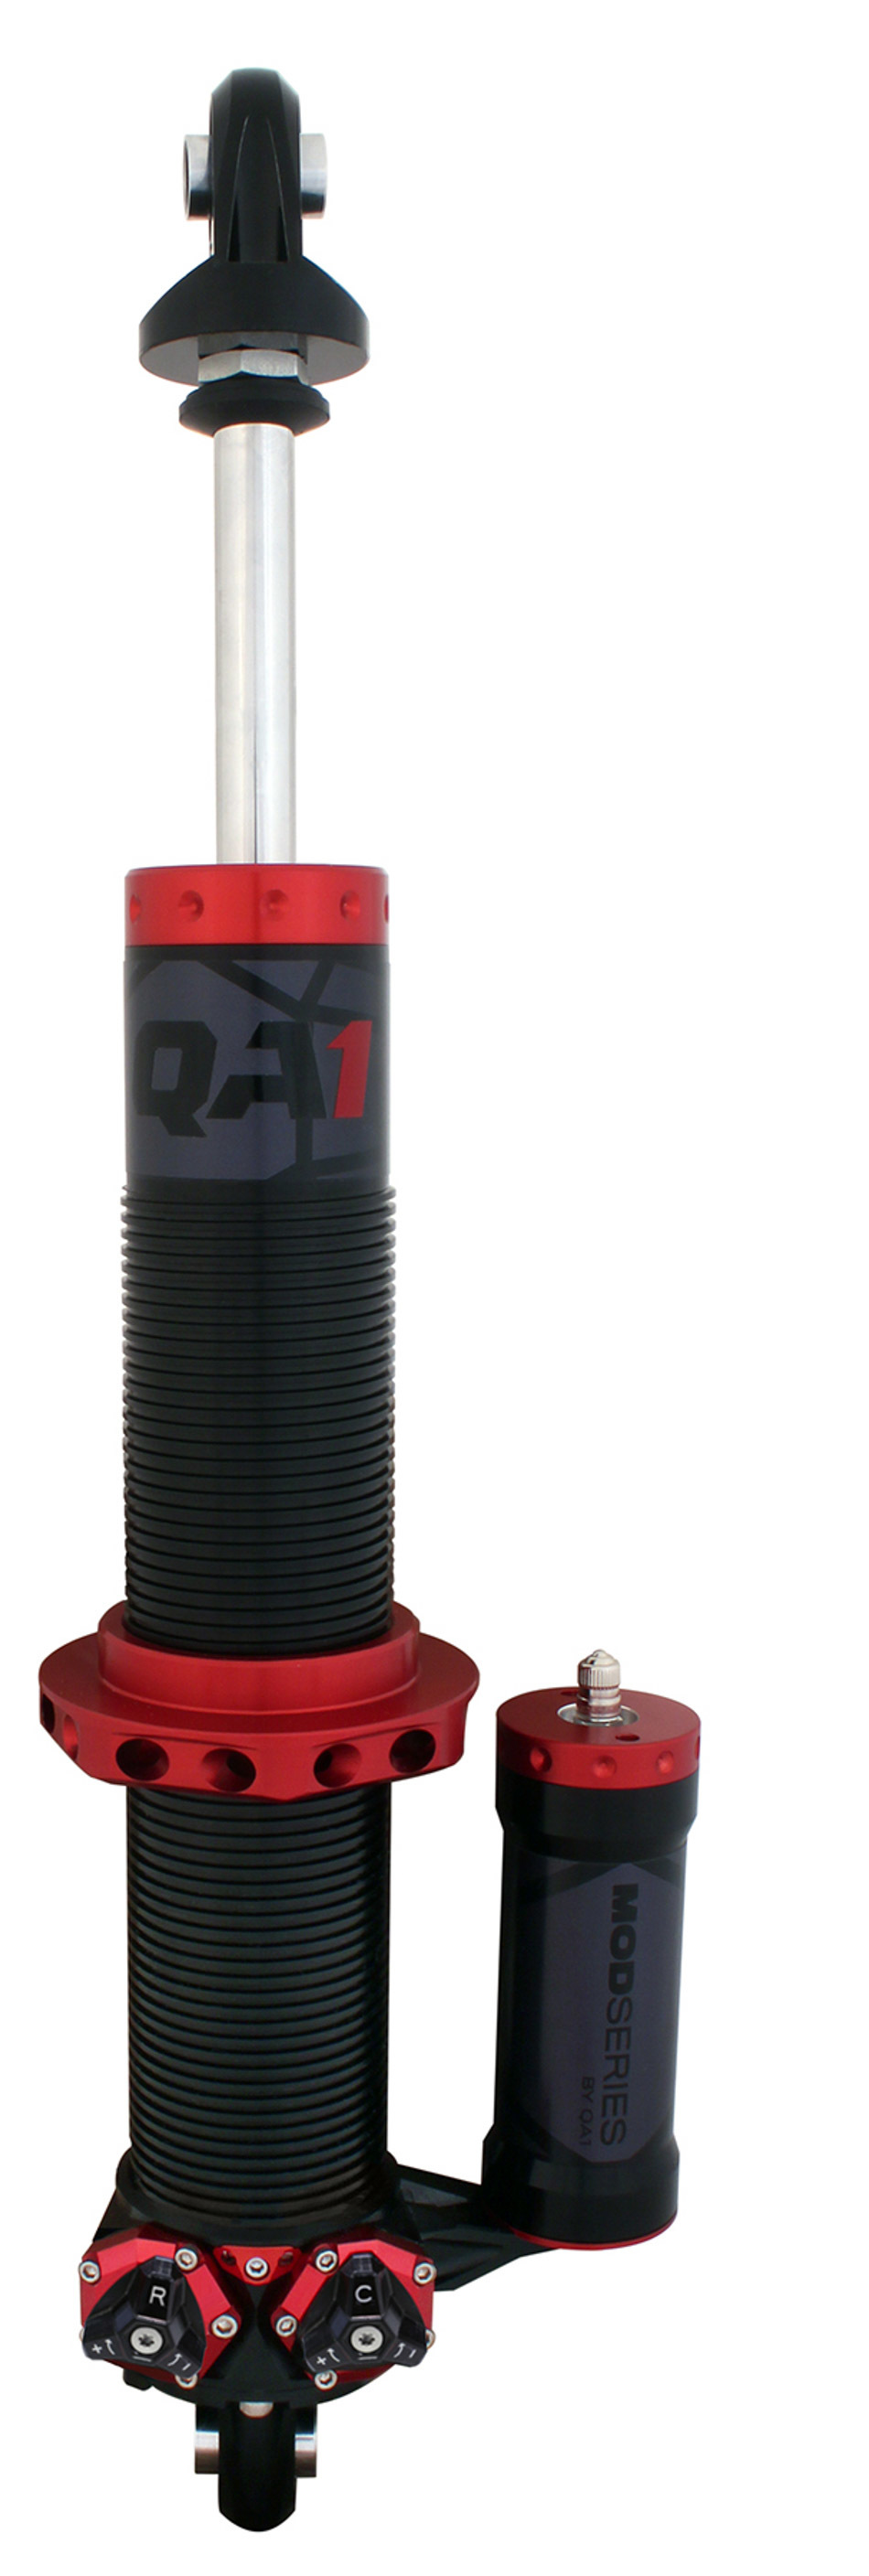 QA1 M611PR Shock, Mod Series, Twintube, 12.50 in Compressed / 18.75 in Extended, 2.00 in OD, Double Adjustable, Aluminum, Black Anodize, Each